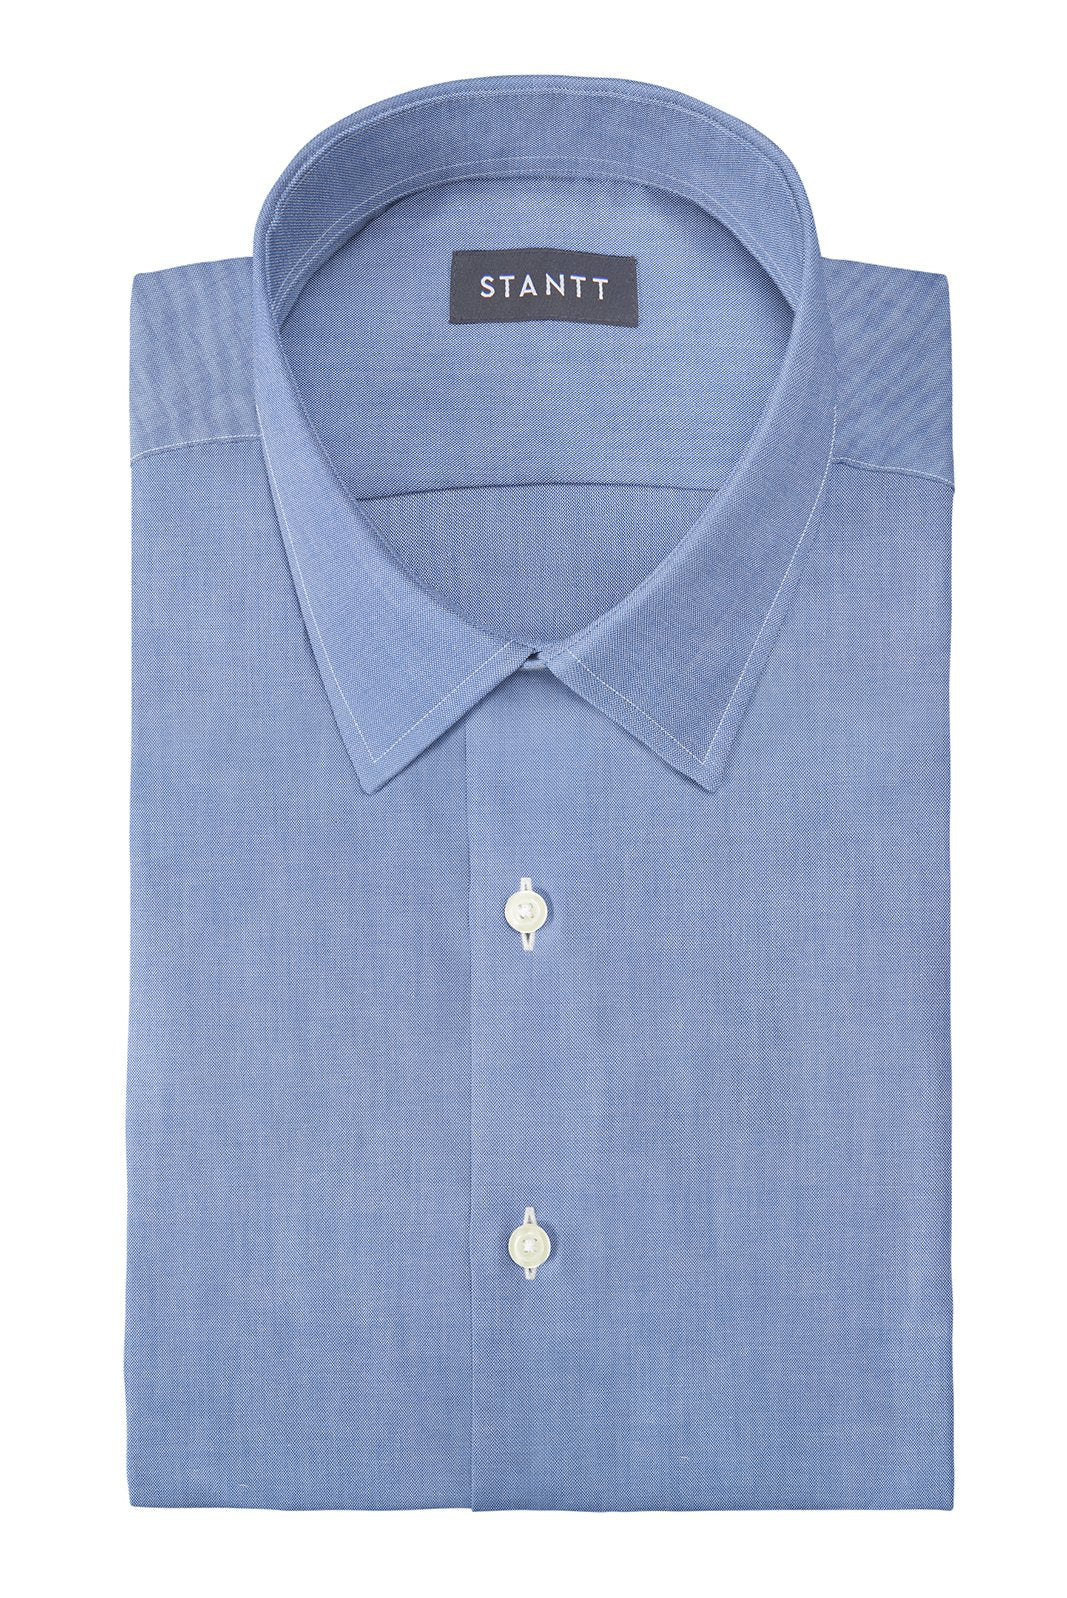 Indigo Oxford Chambray: Semi-Spread Collar, Barrel Cuff